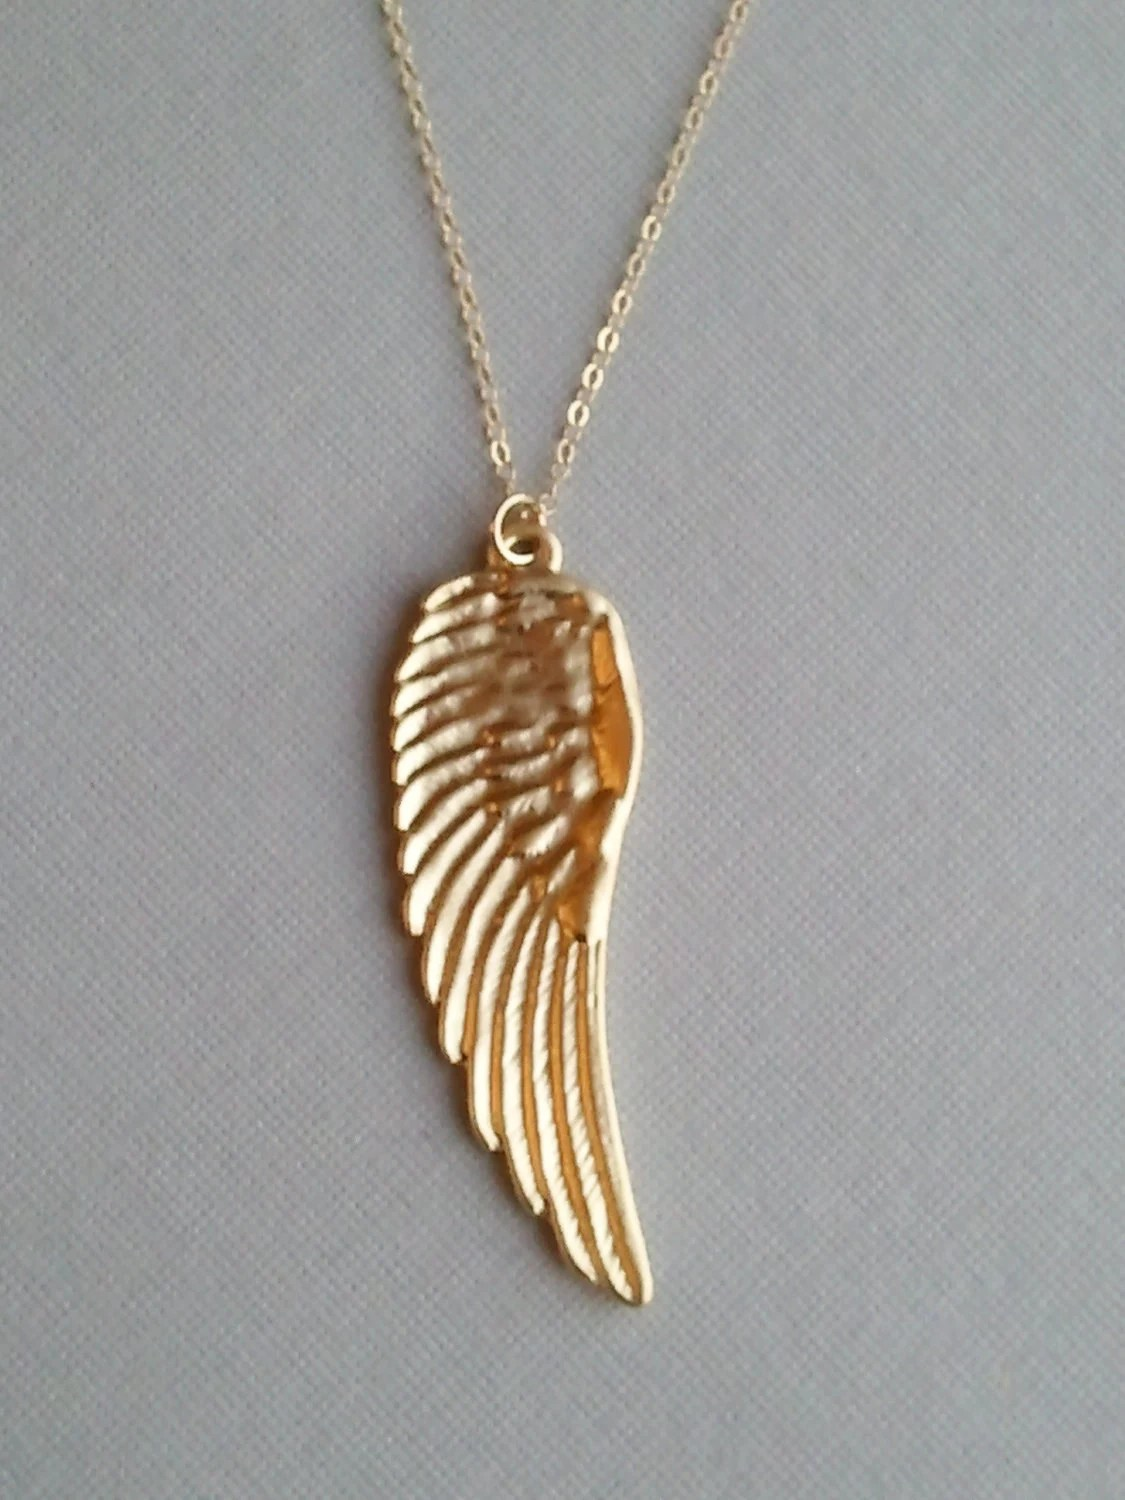 Mothers Day Sale Gold Angels Wing Necklace Also